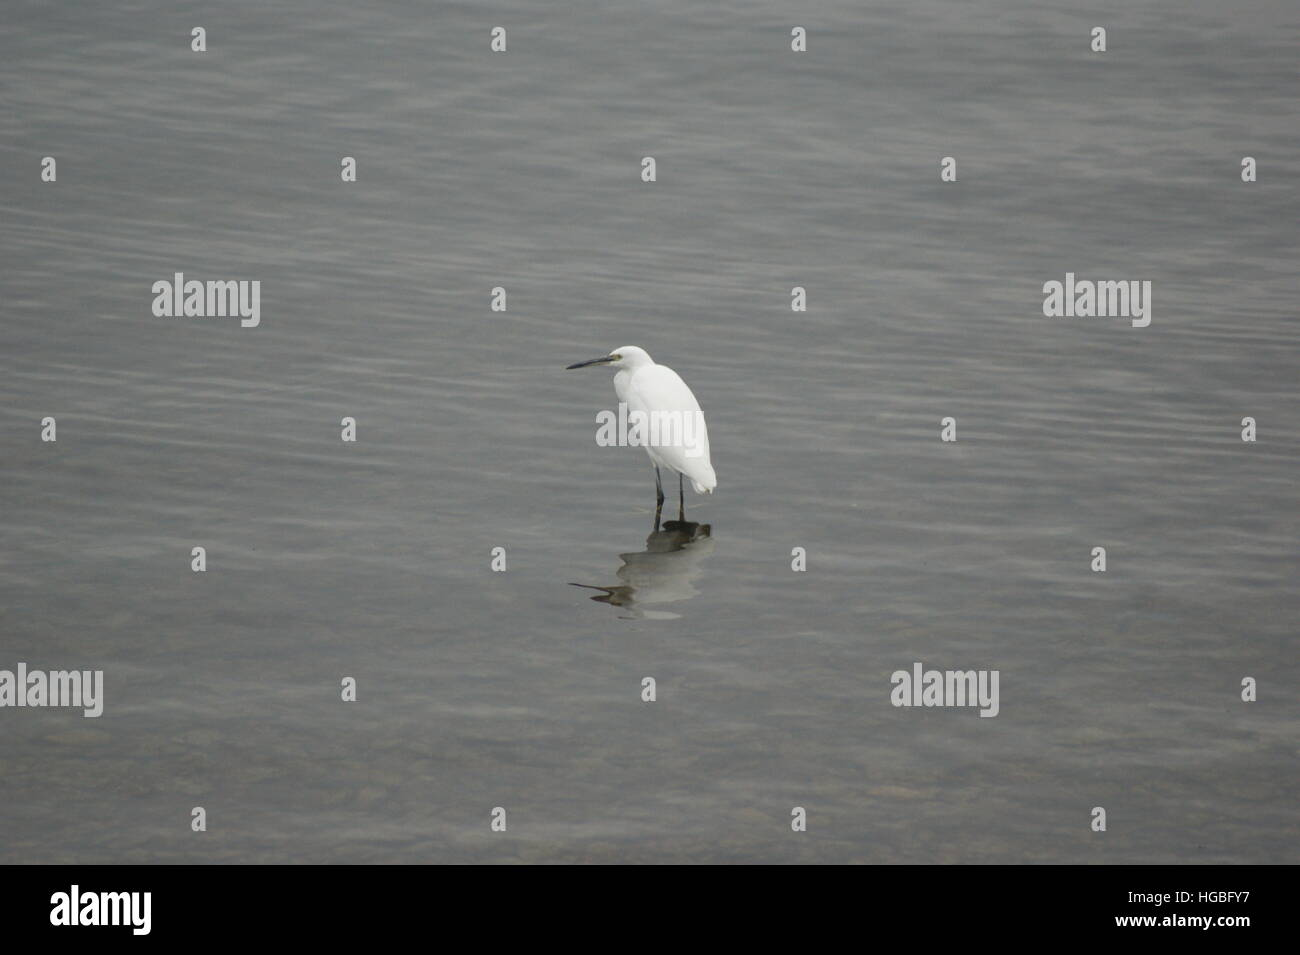 A lone Little Egret wading at Draycote Water reservoir on 25th October 2016. Stock Photo